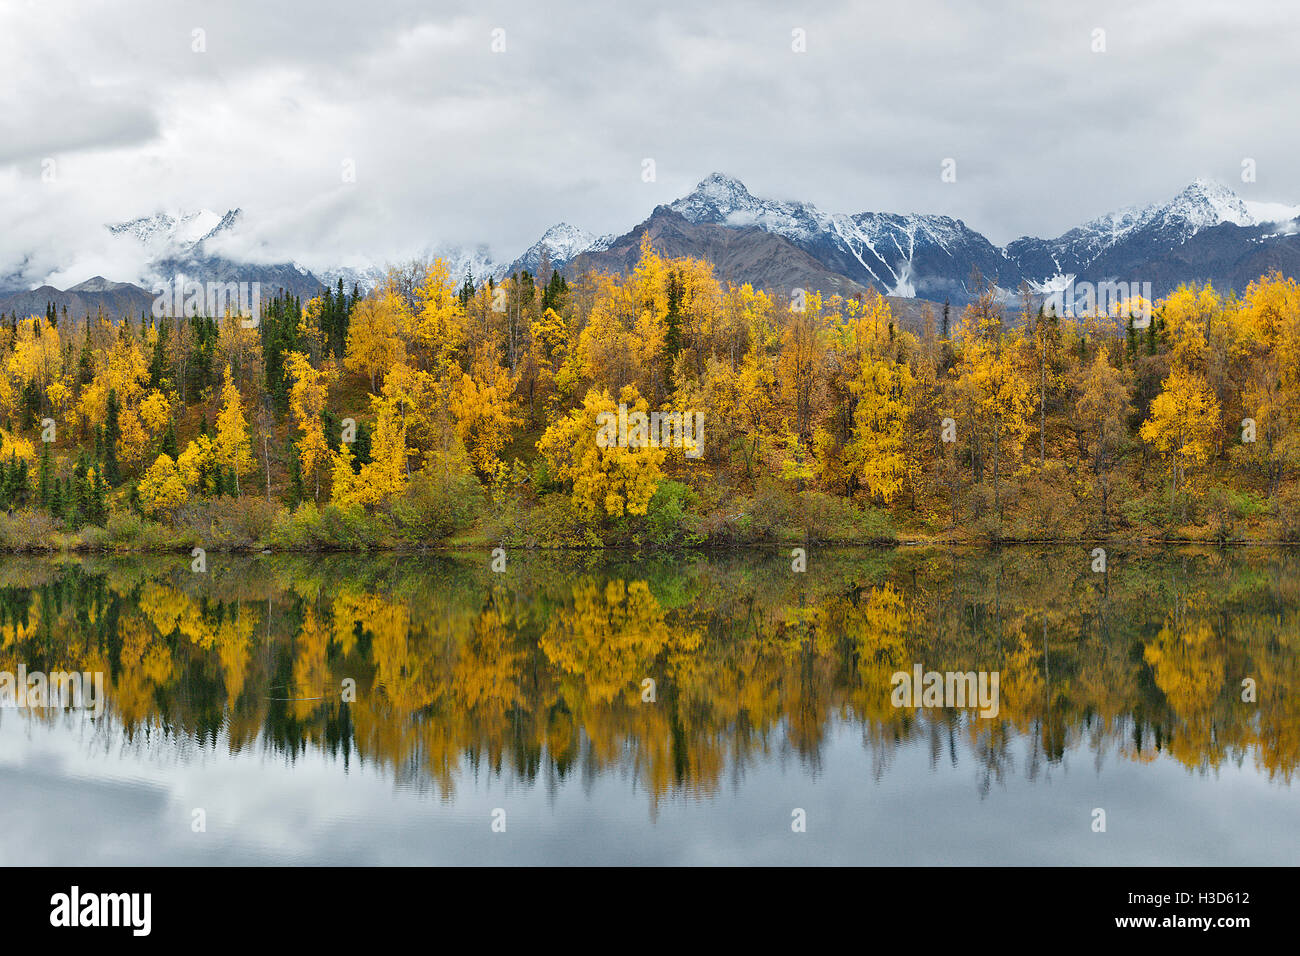 Fall colors of the boreal forest reflected in a still lake, Alaska, USA - Stock Image